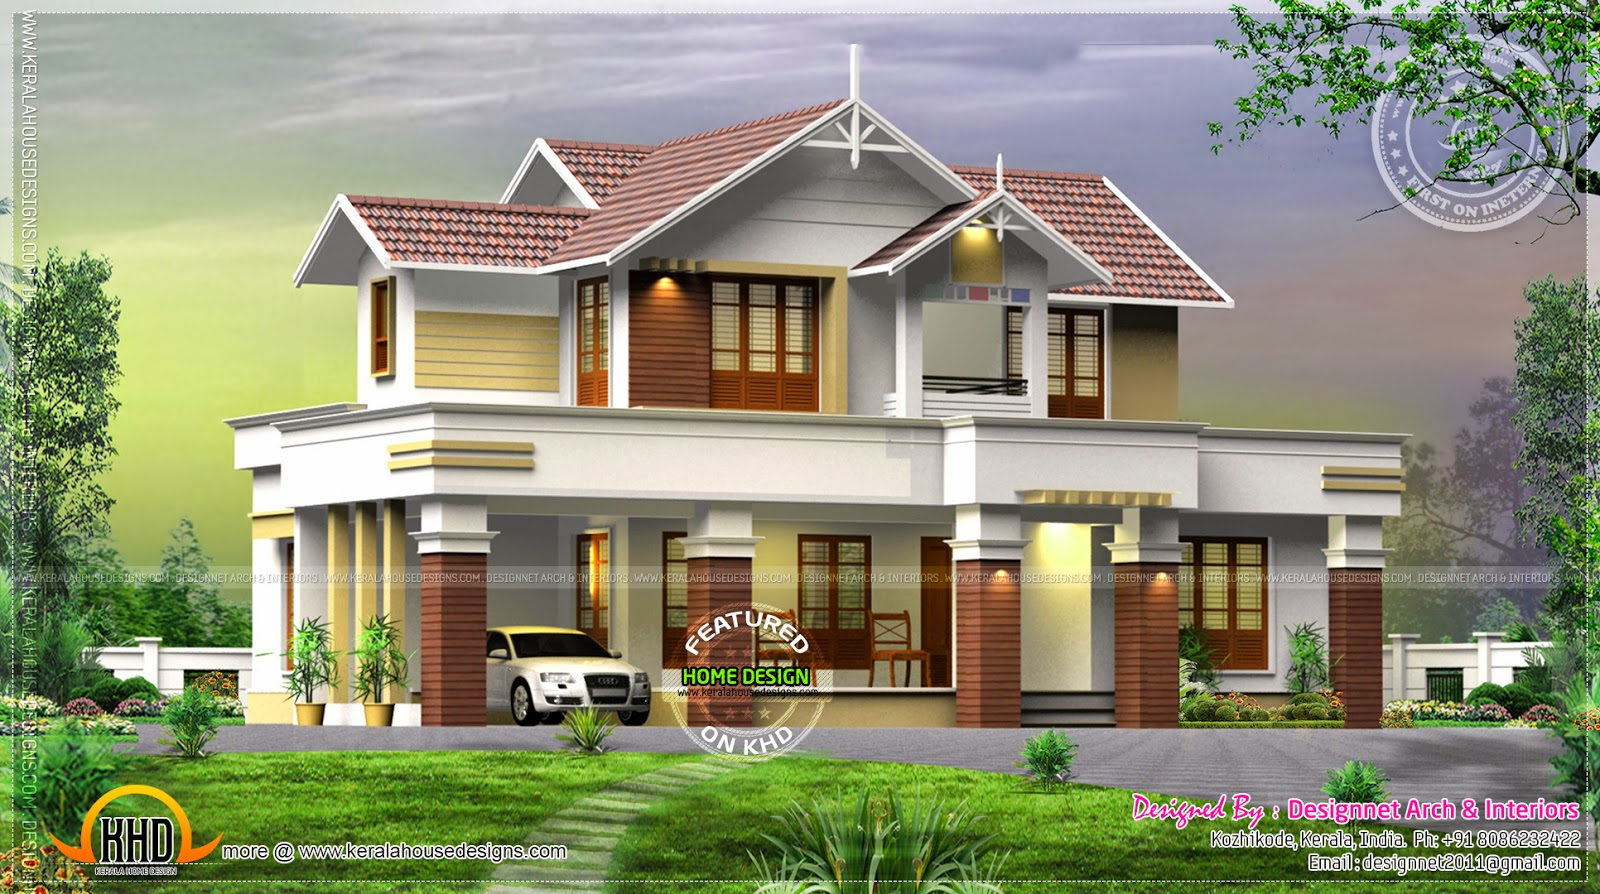 One Square Meter In Square Feet Beautiful Villa Exterior In 2370 Square Feet Kerala Home